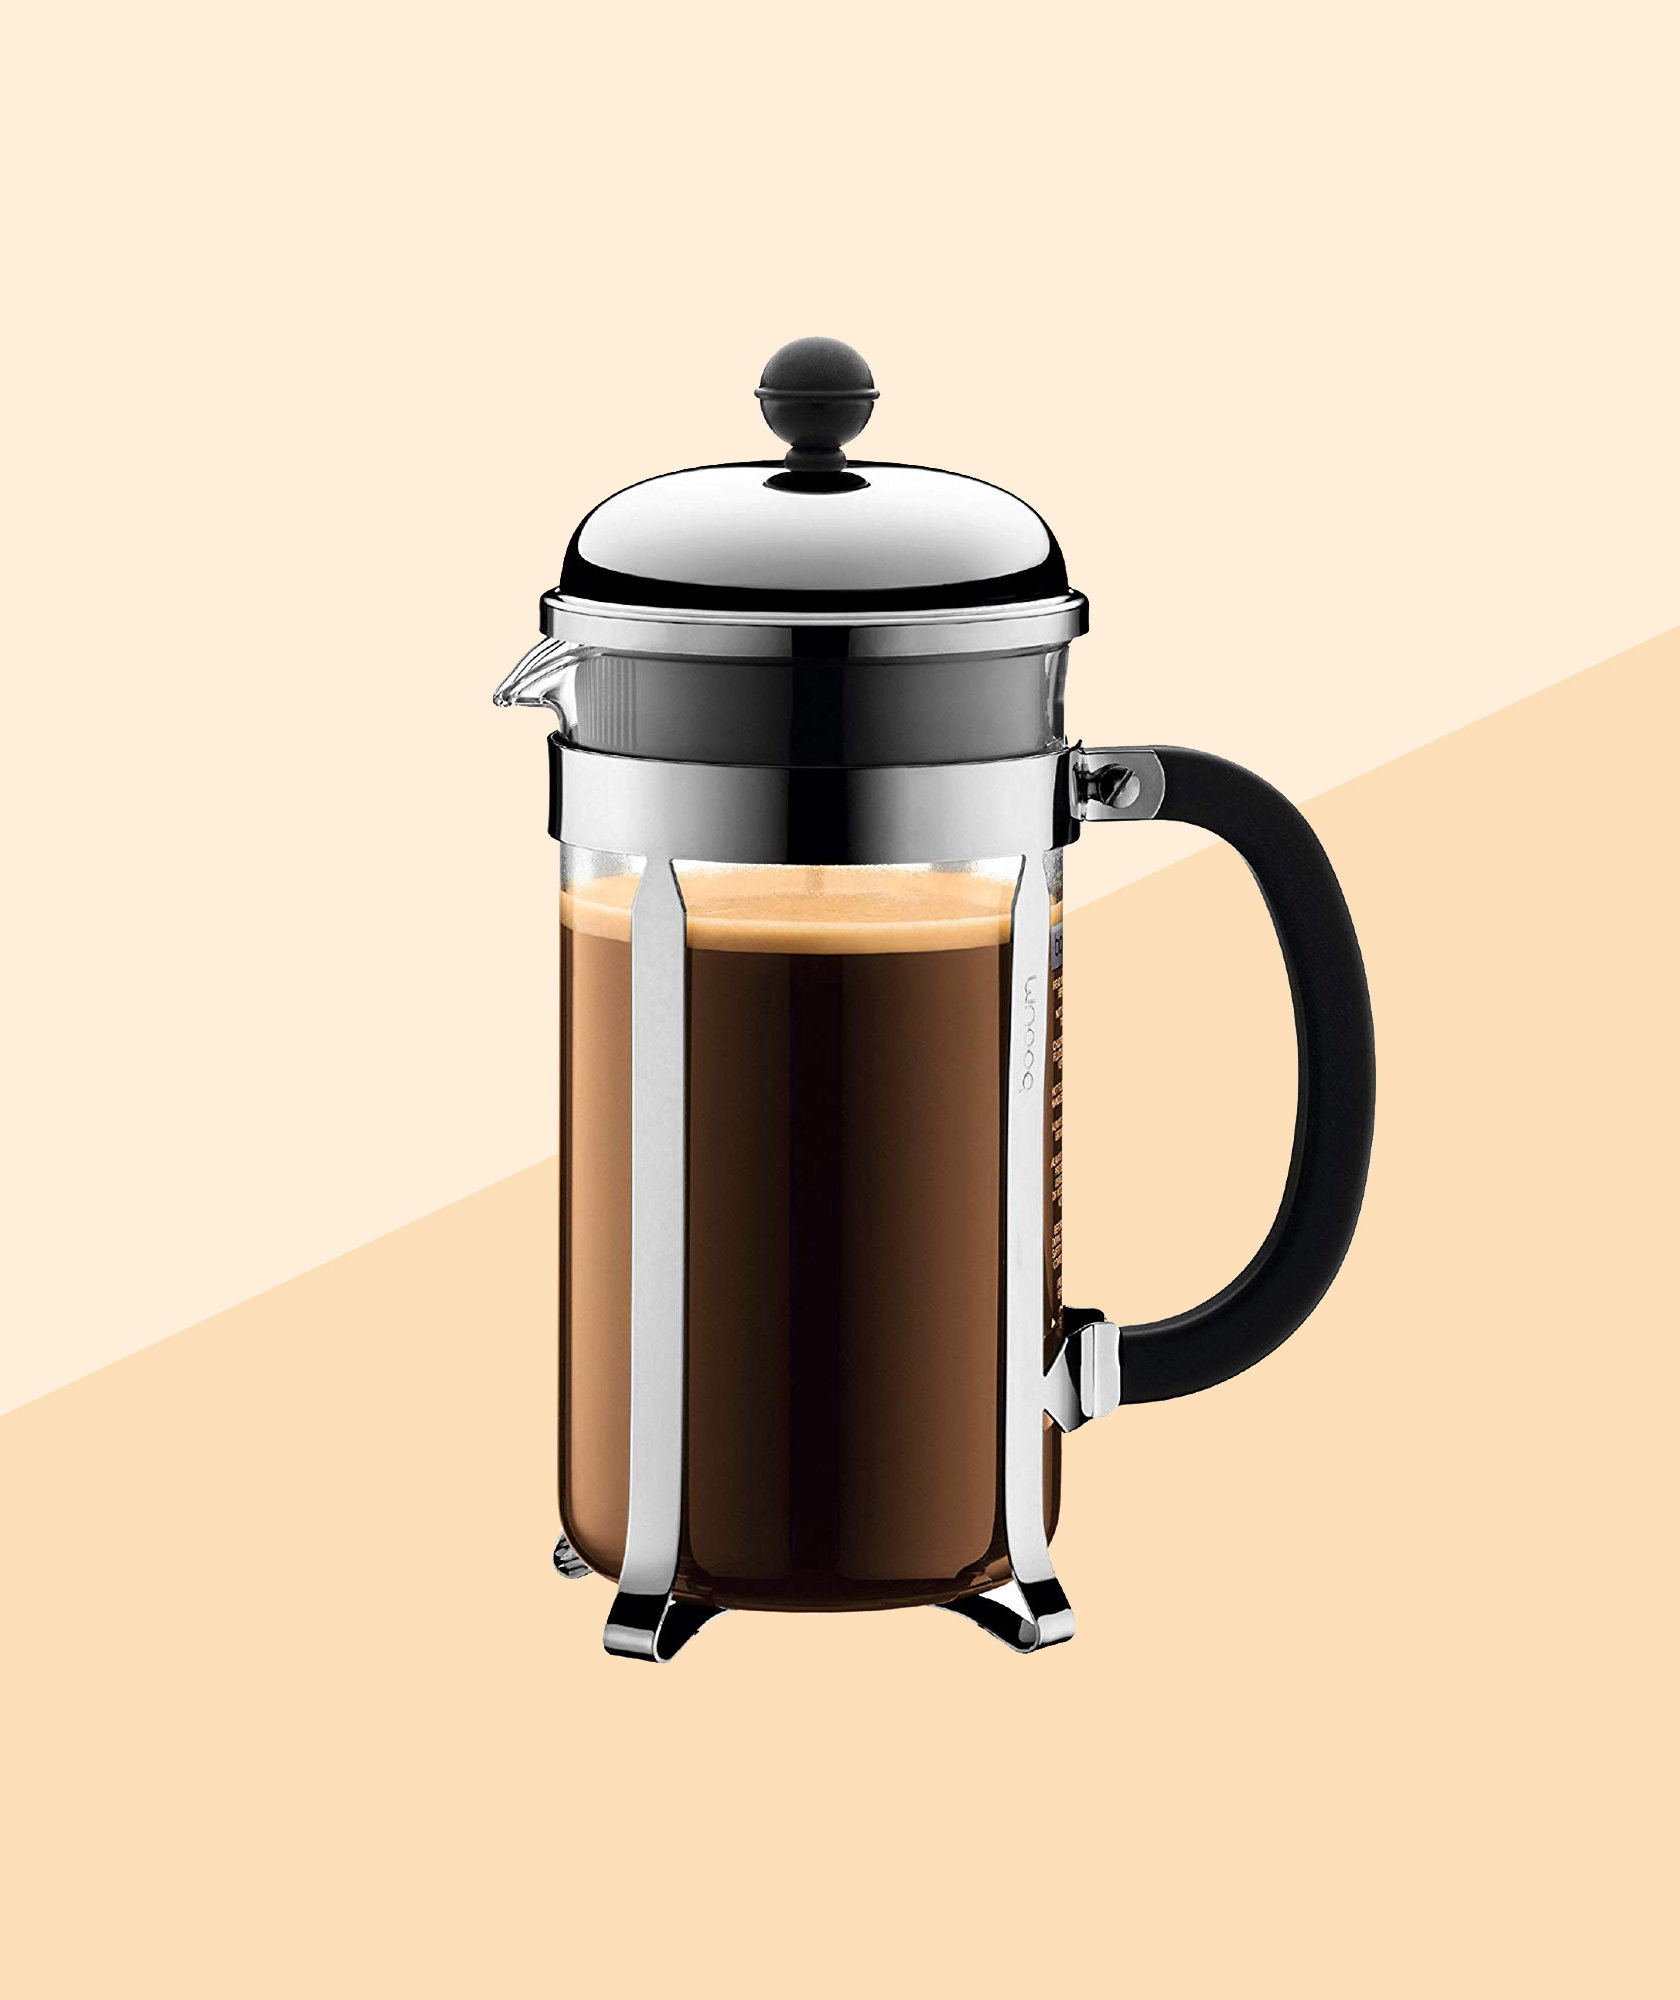 Amazon's Best-Selling French Press Saved My Small Kitchen